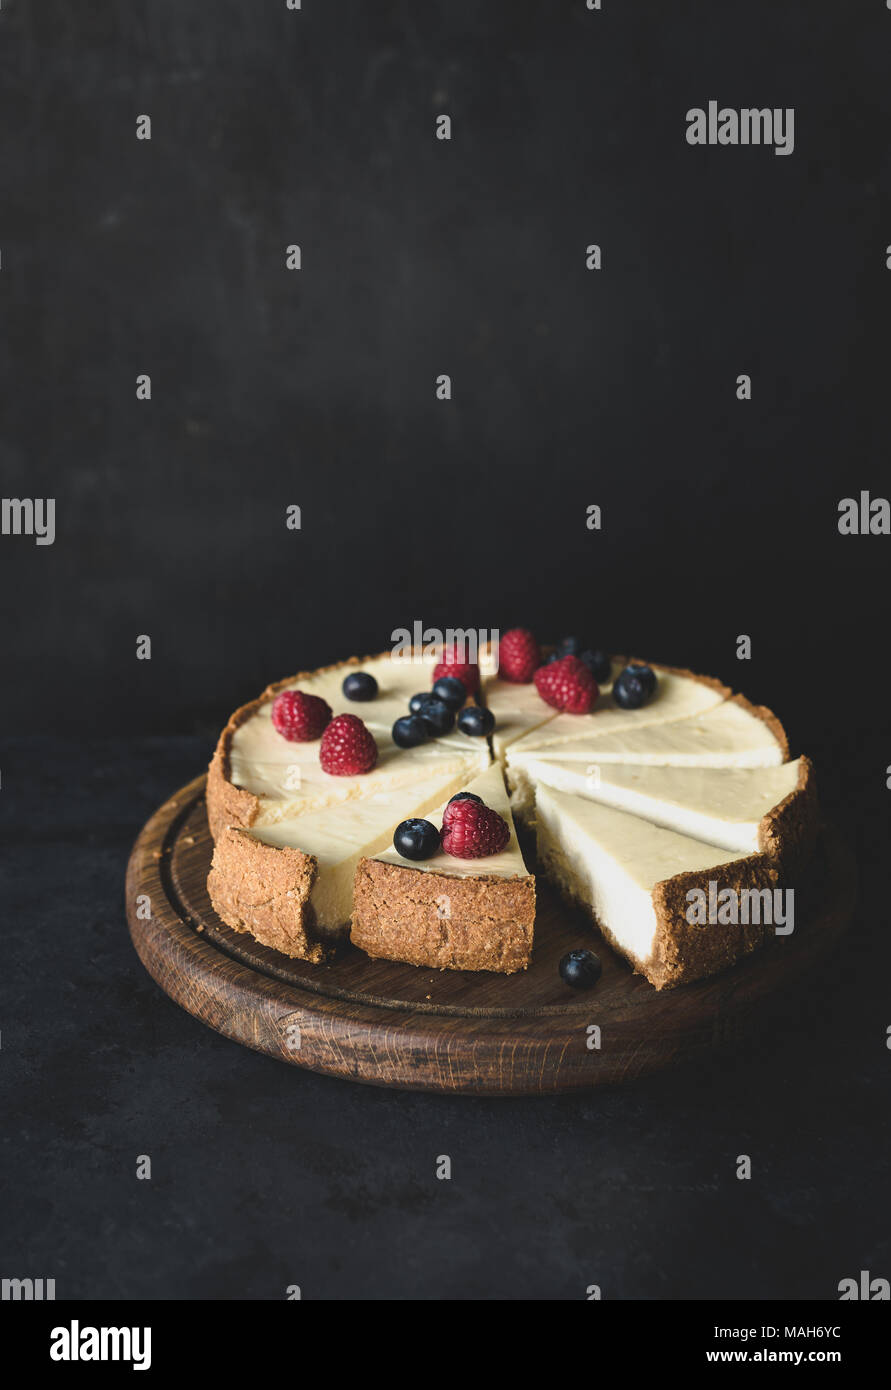 Cheesecake with fresh berries on cutting board on dark background. Selective focus, toned image. Copy space for text. - Stock Image